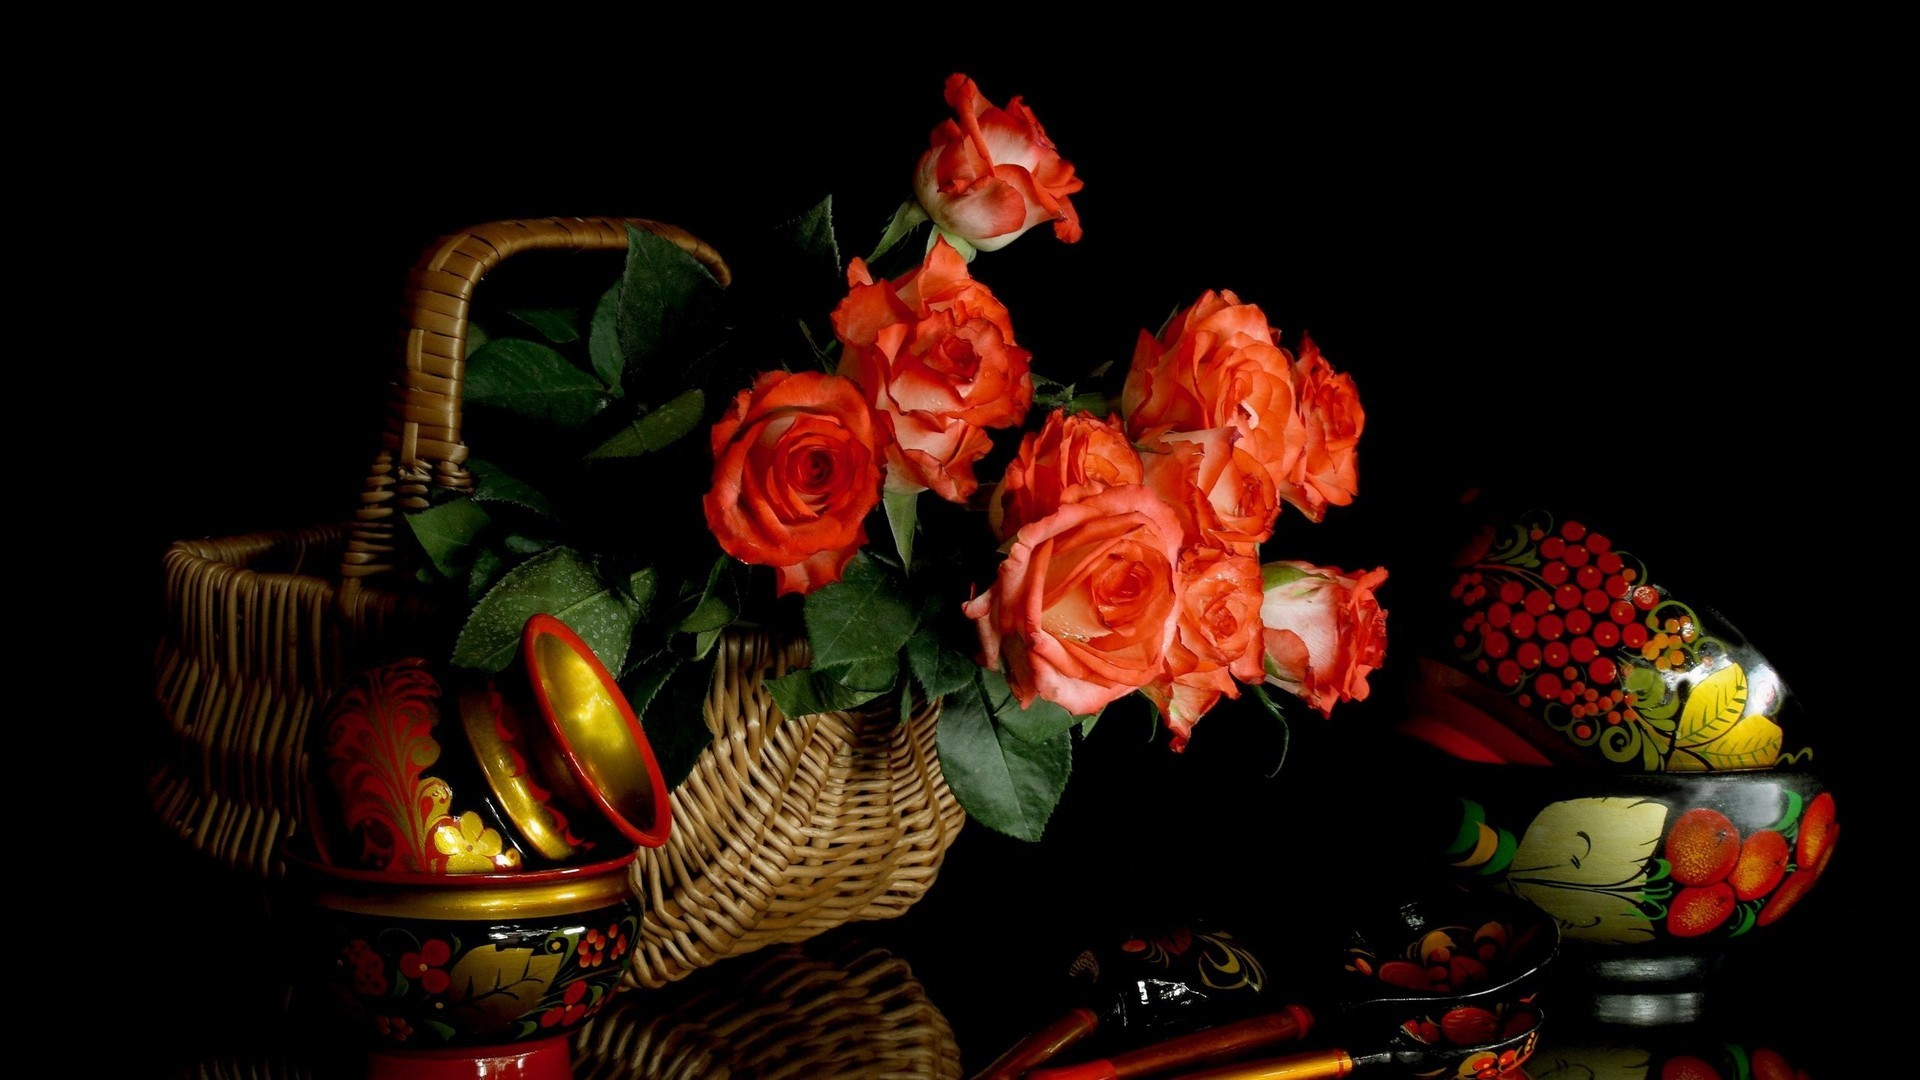 flowers wooden spoons dishes still life wallpaper background